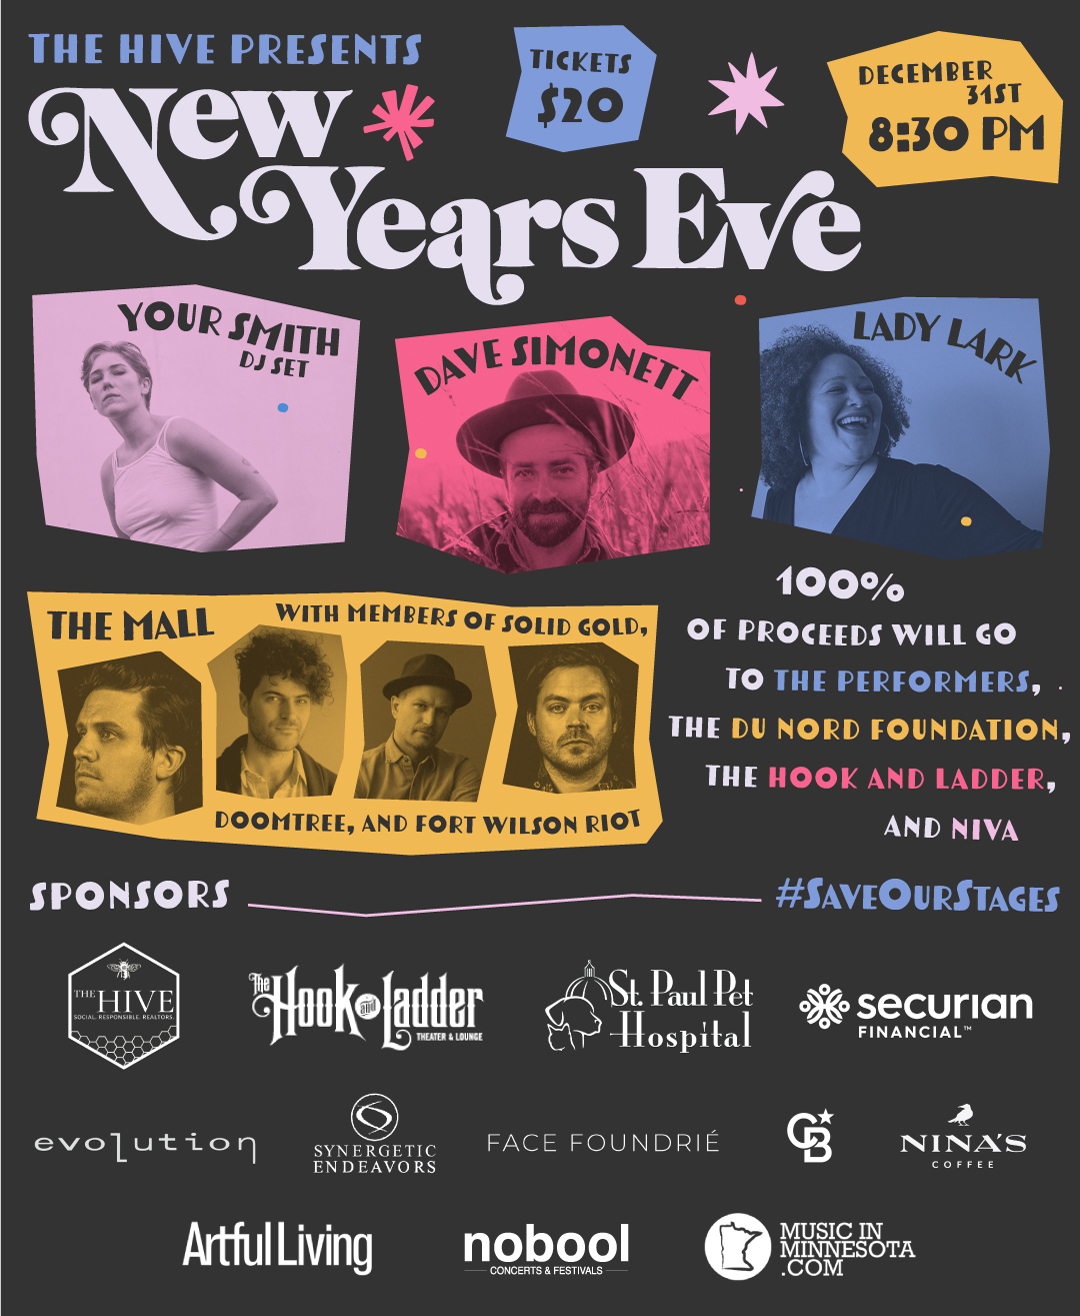 HIVE presents New Years Eve with Your Smith, The Mall, Lady Lark, Dave Simonett on 12/31/20 at The Hook!